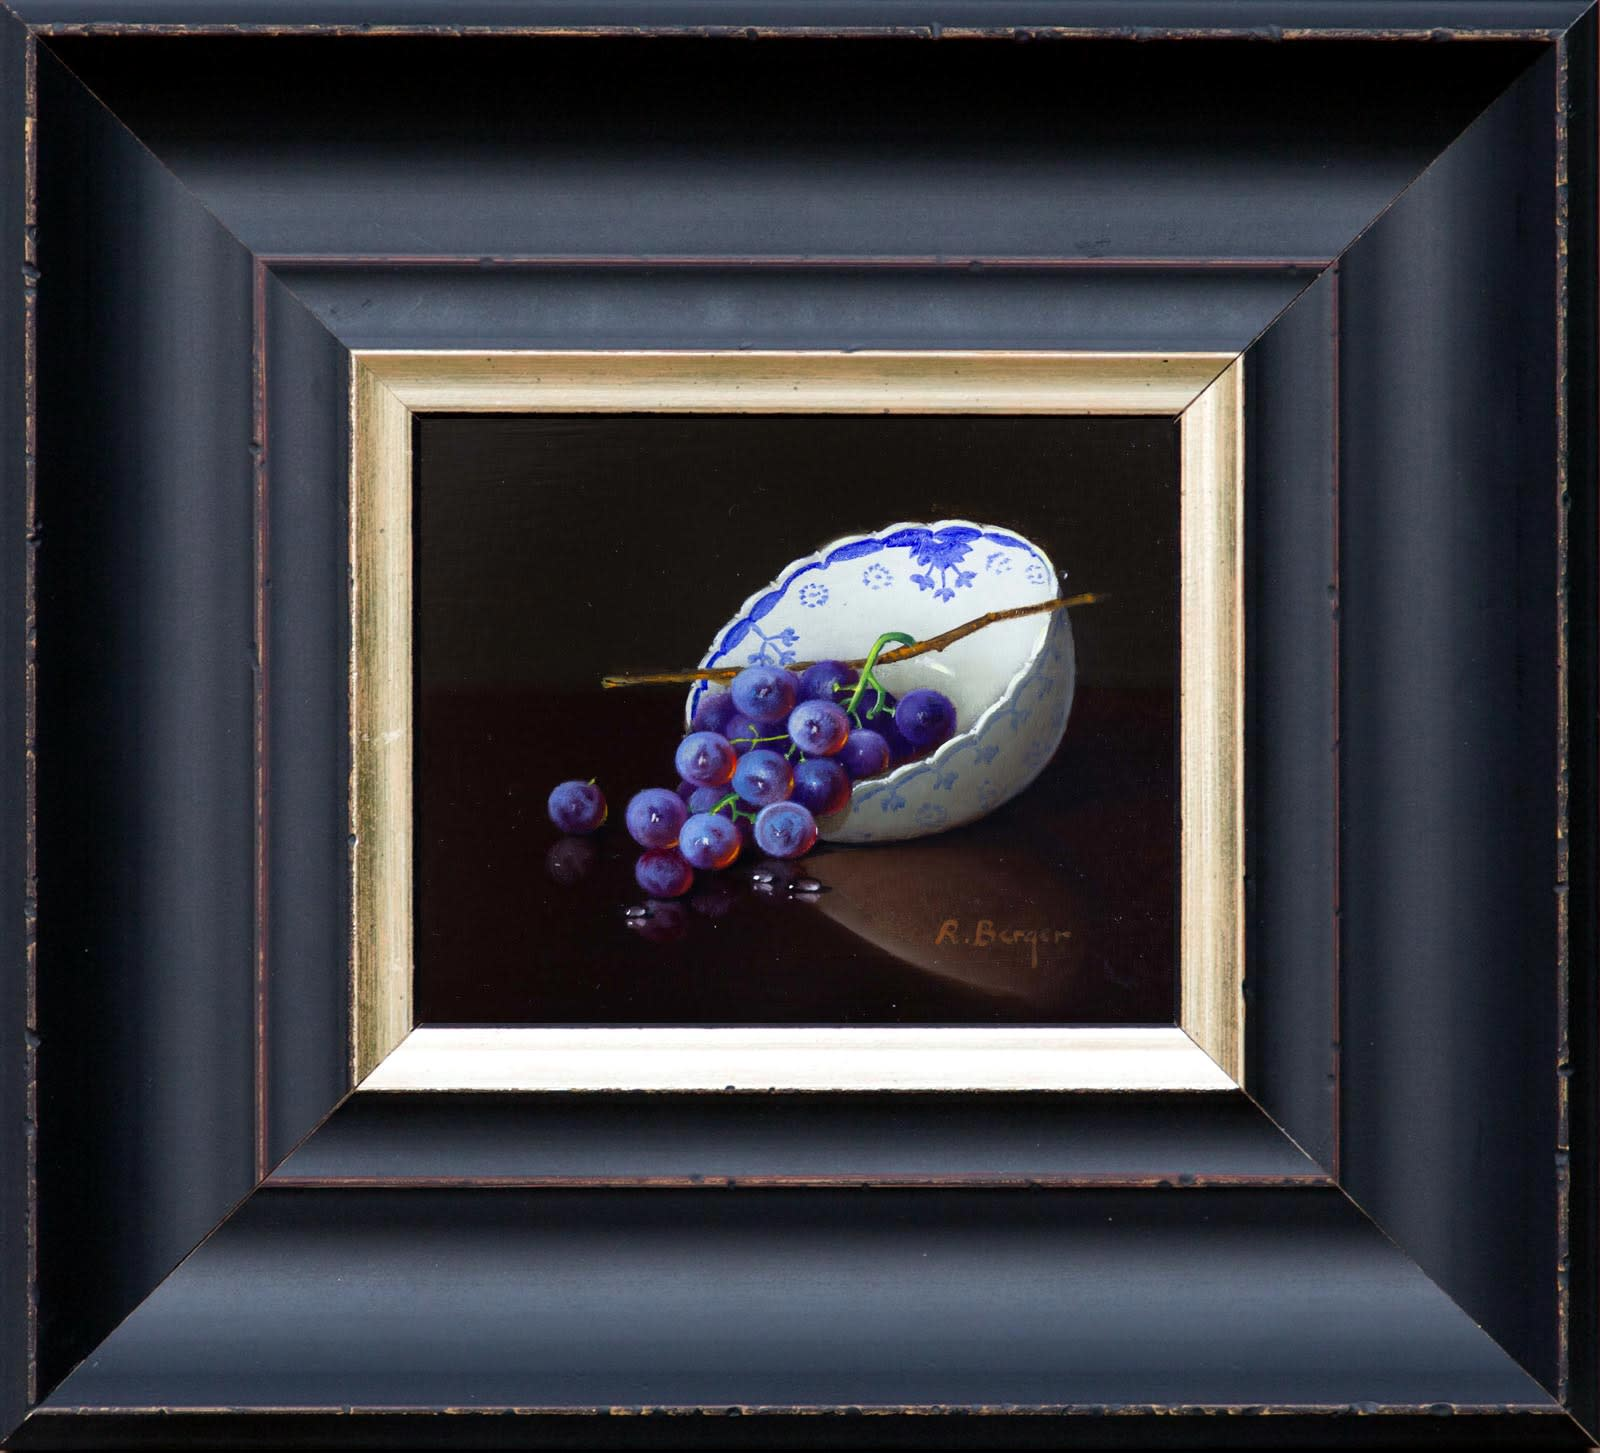 Grapes in Porcelain Bowl